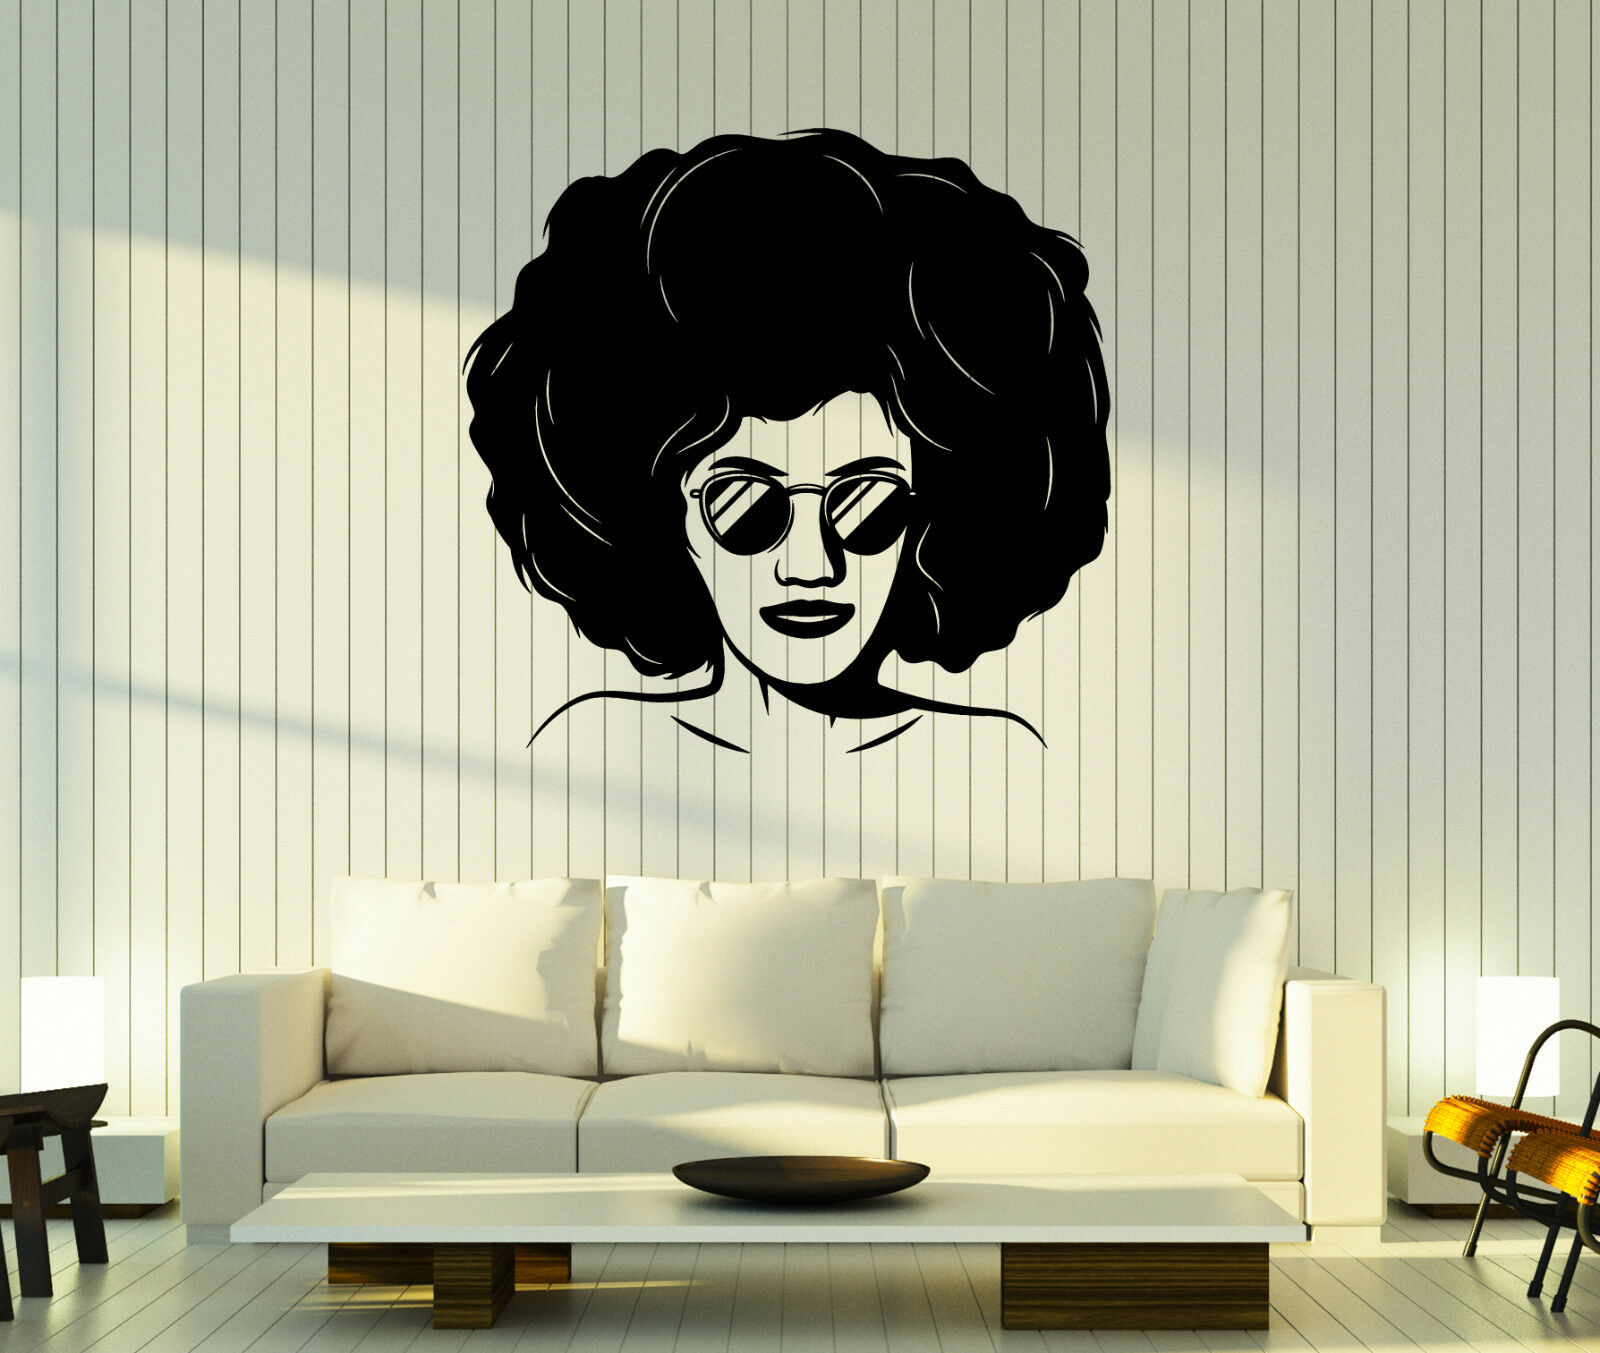 Wall Vinyl Decal Beauty Girl  Style of the 90's Hairstyle Glasses Decor z4831